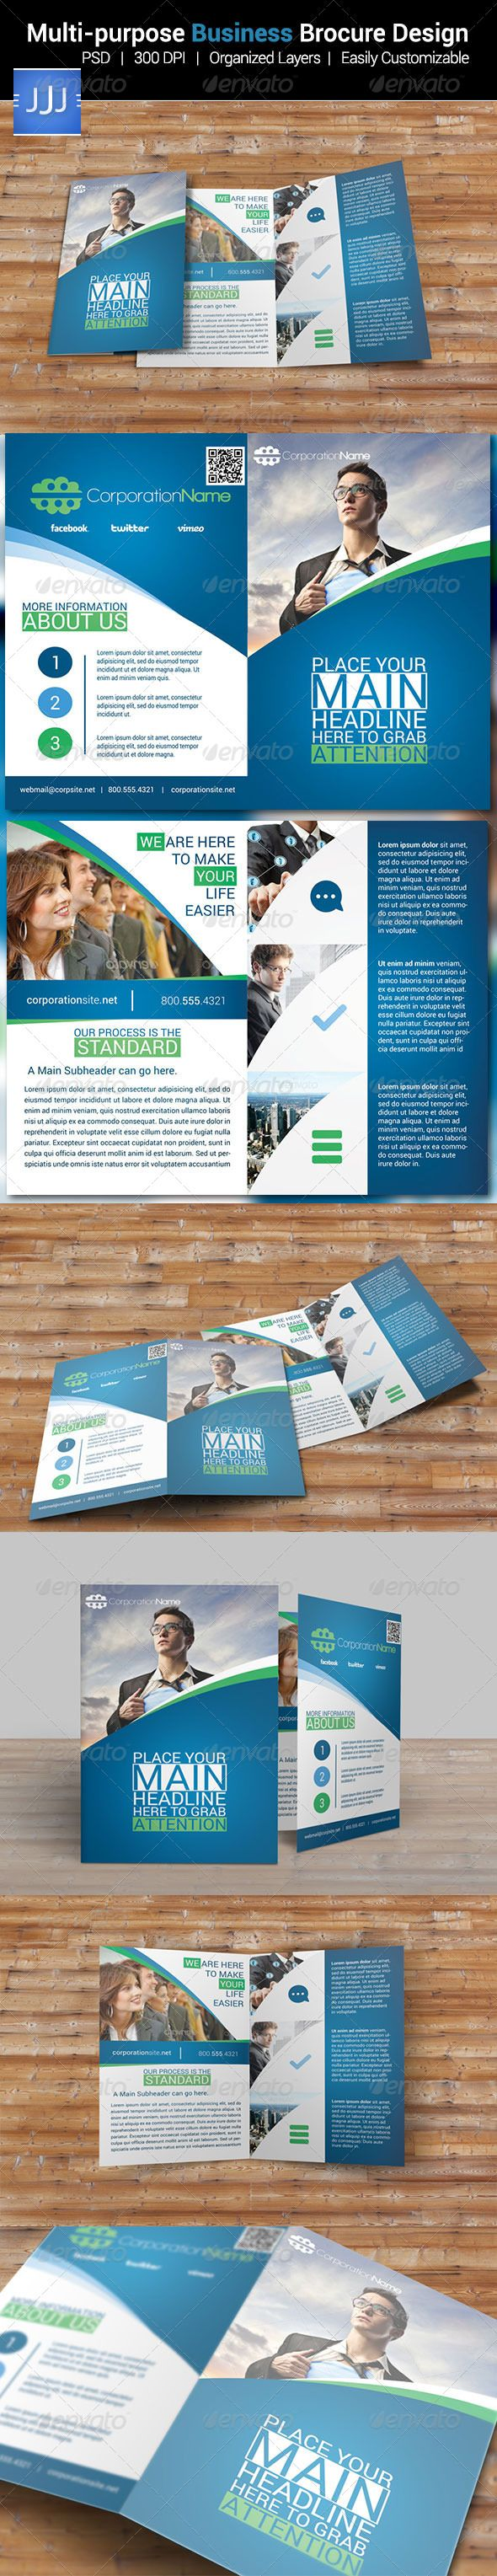 Best Brand Book Images On   Brochure Template Brand